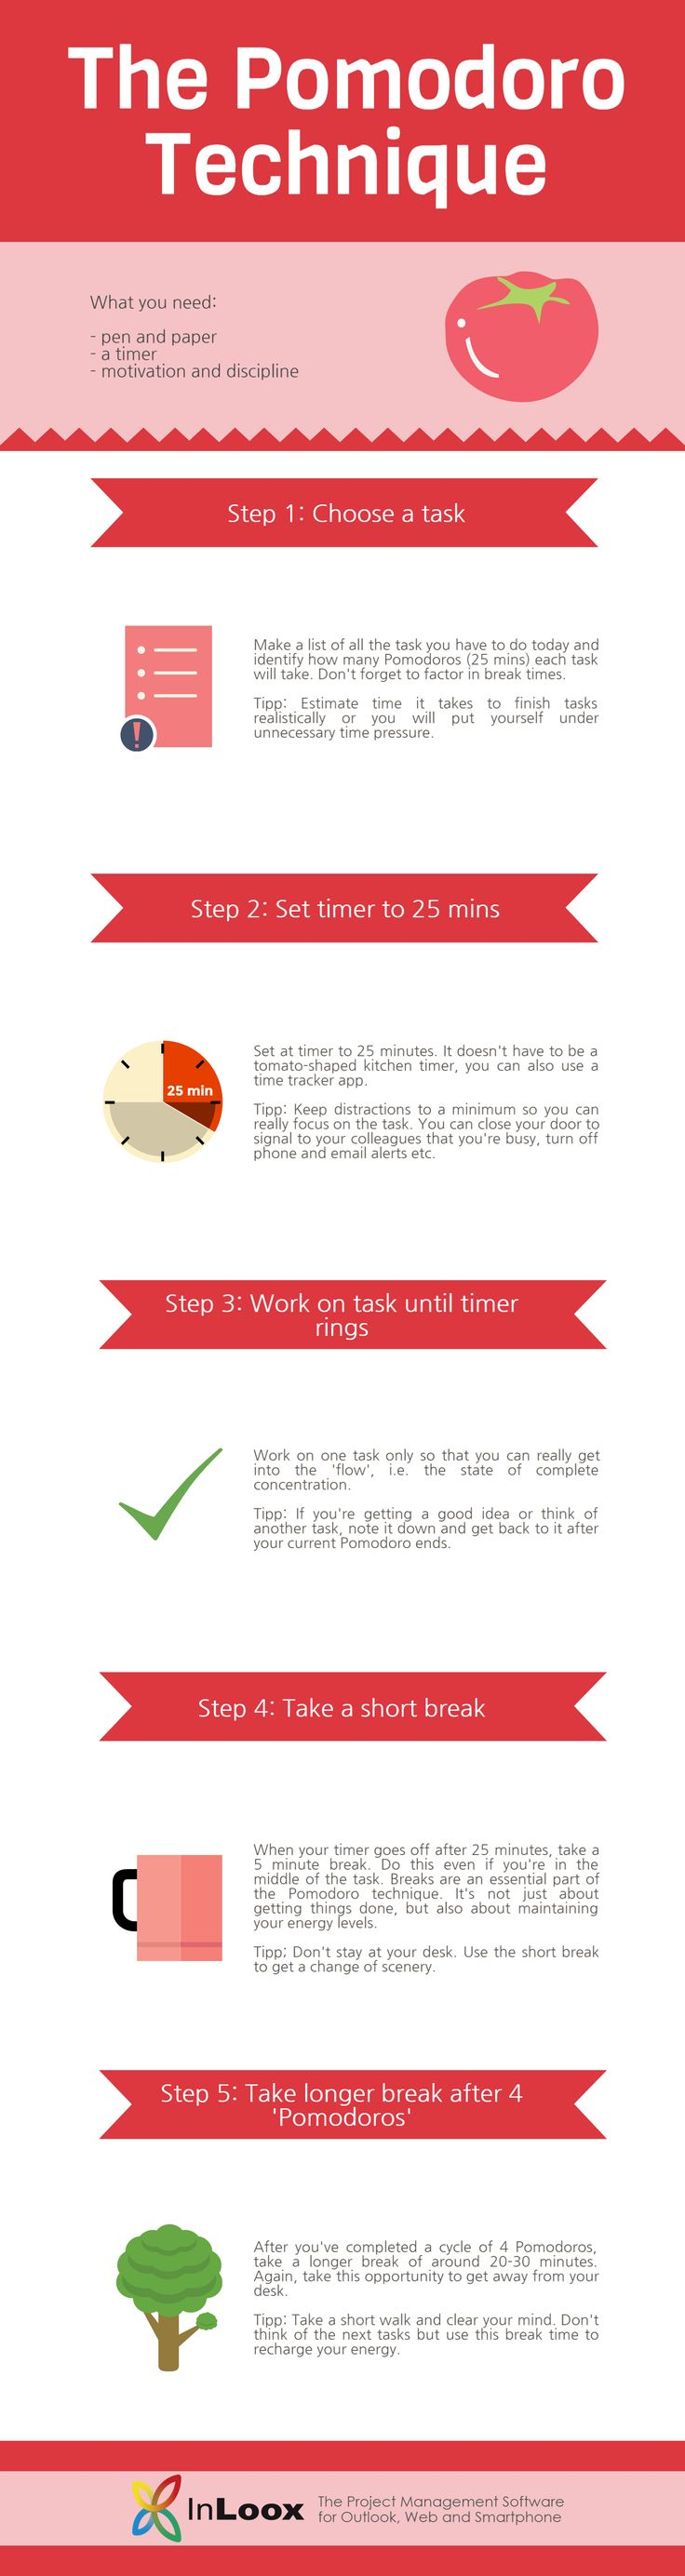 32 best Pomodoro Technique images on Pinterest | Productivity, Time ...